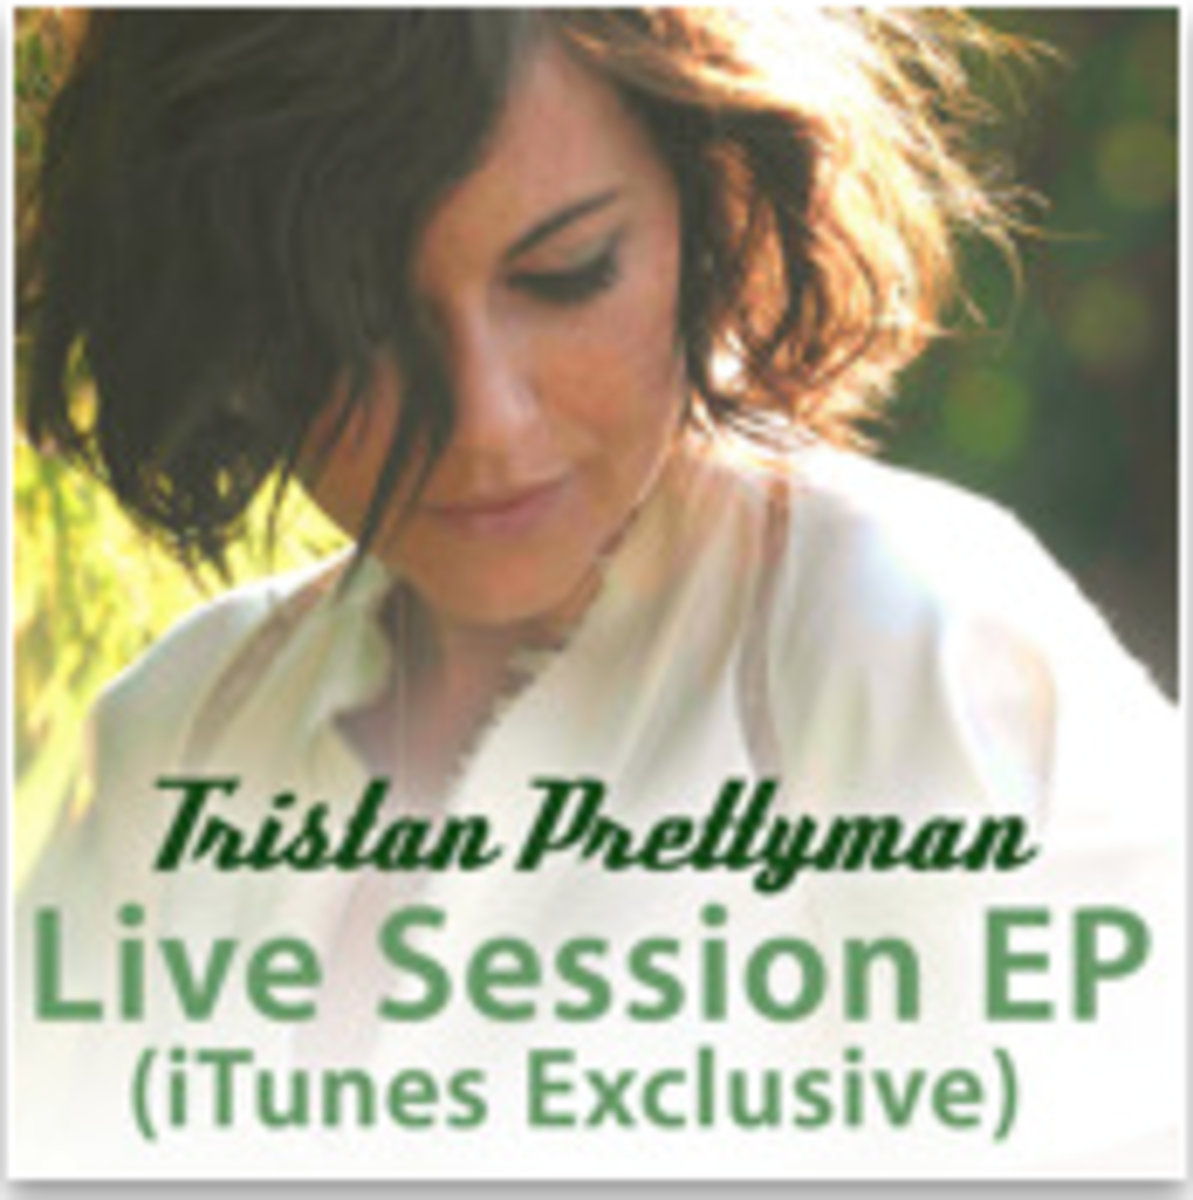 Tristan Prettyman Live Session EP (iTunes Exclusive)